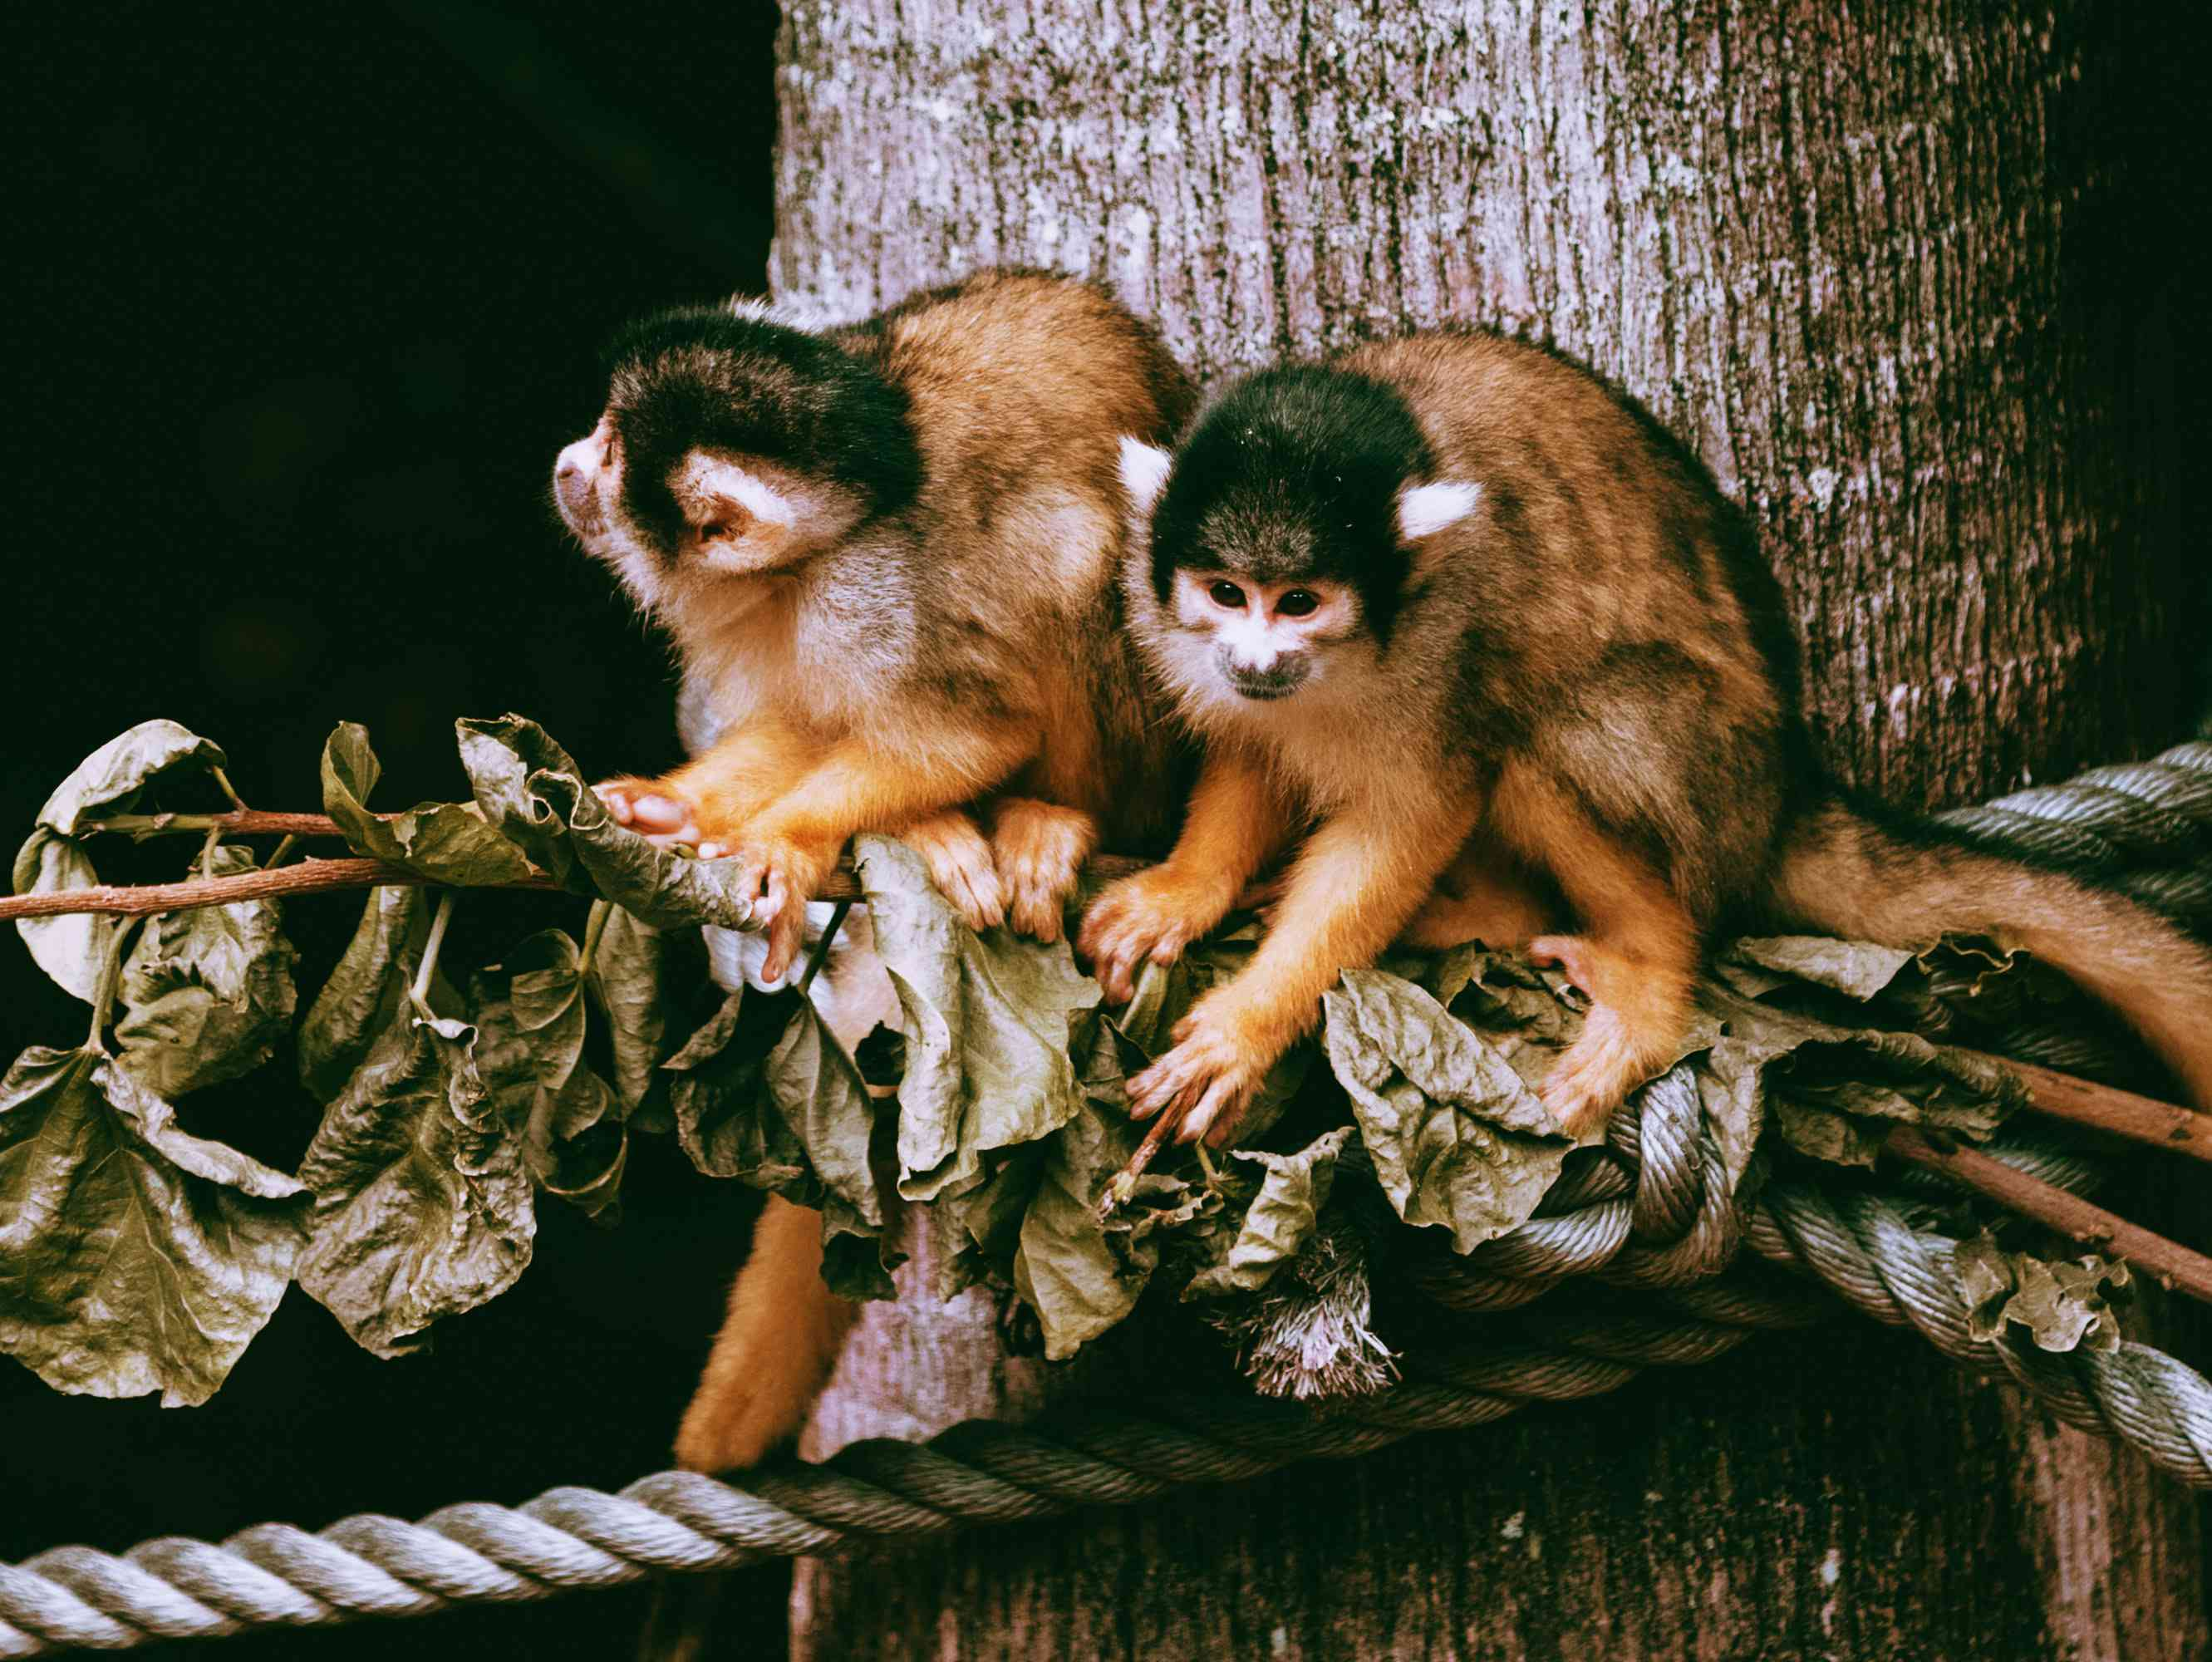 Monkeys at the Auckland Zoo